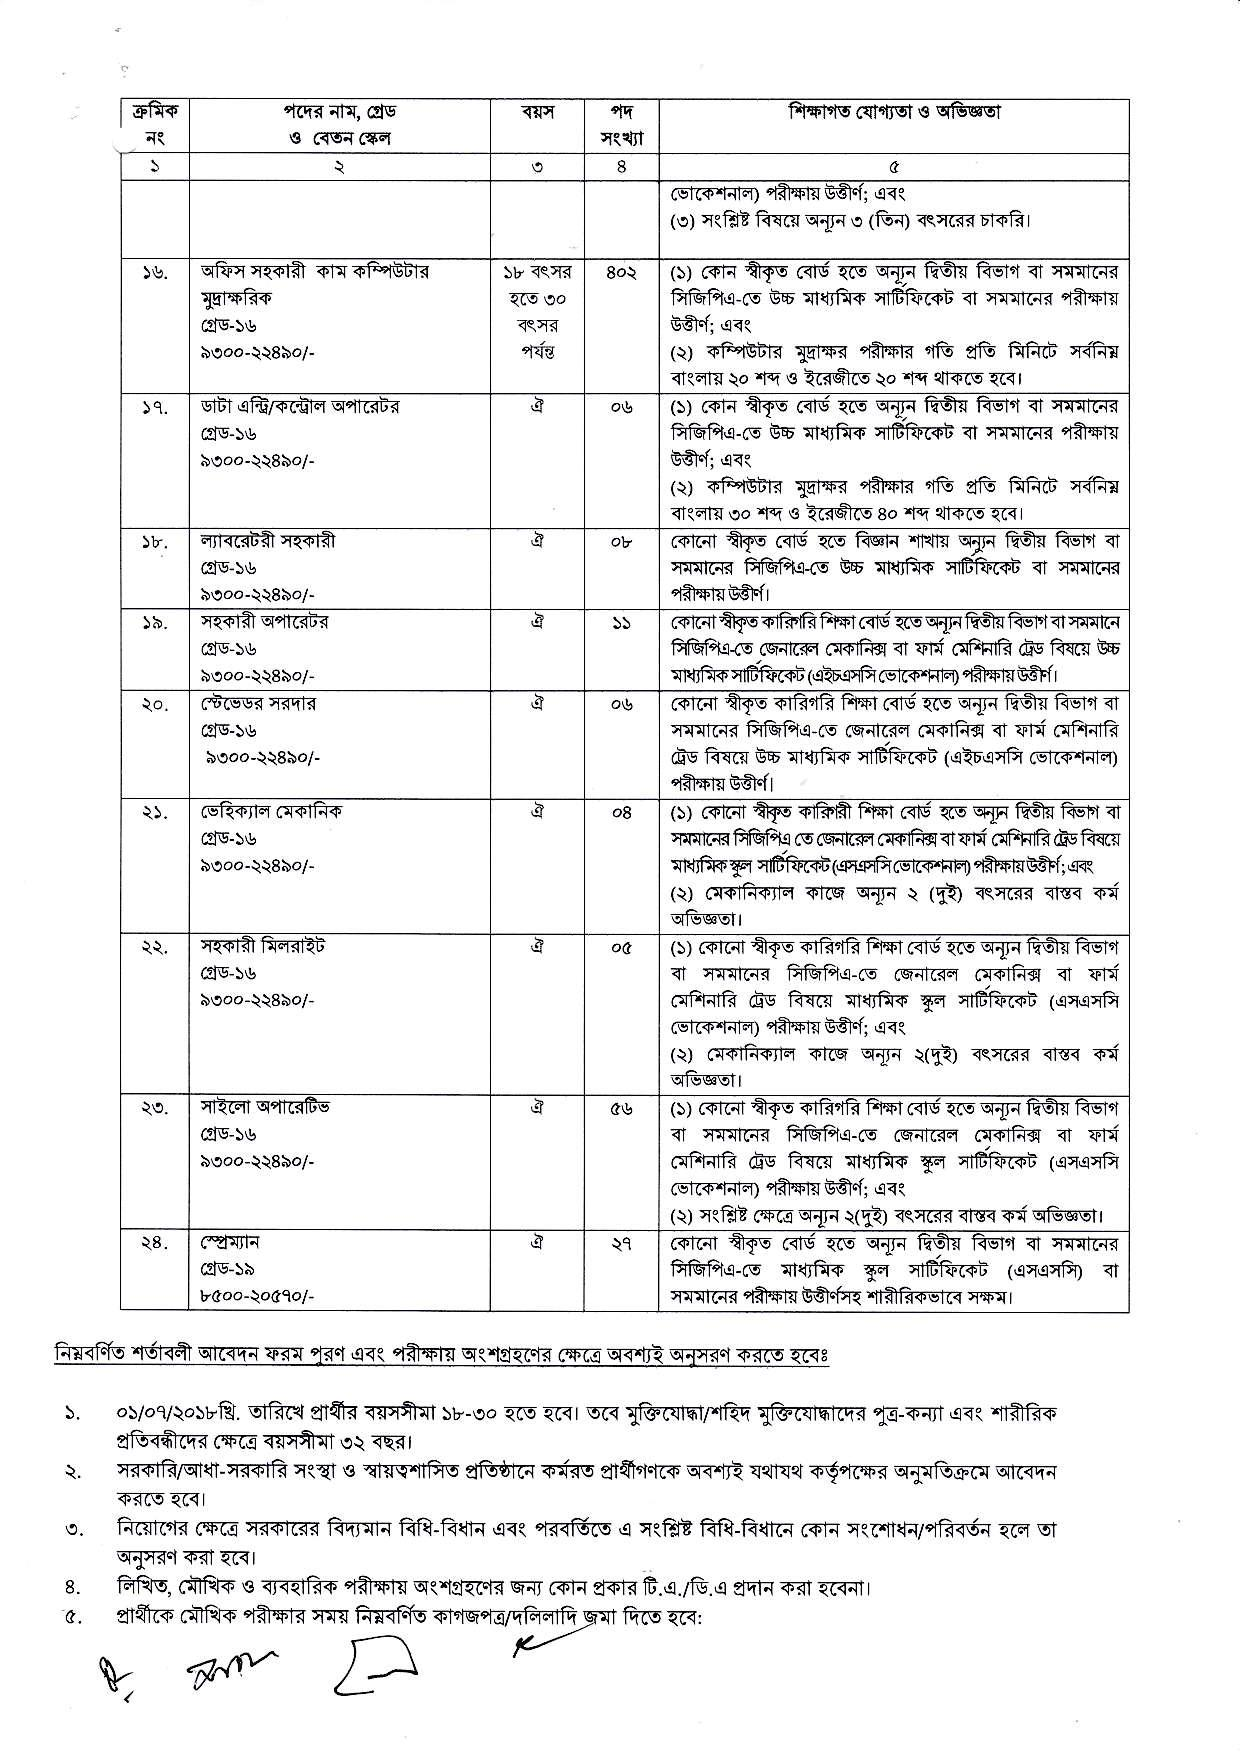 Directorate General of Food Dgfood Exam Related Notice